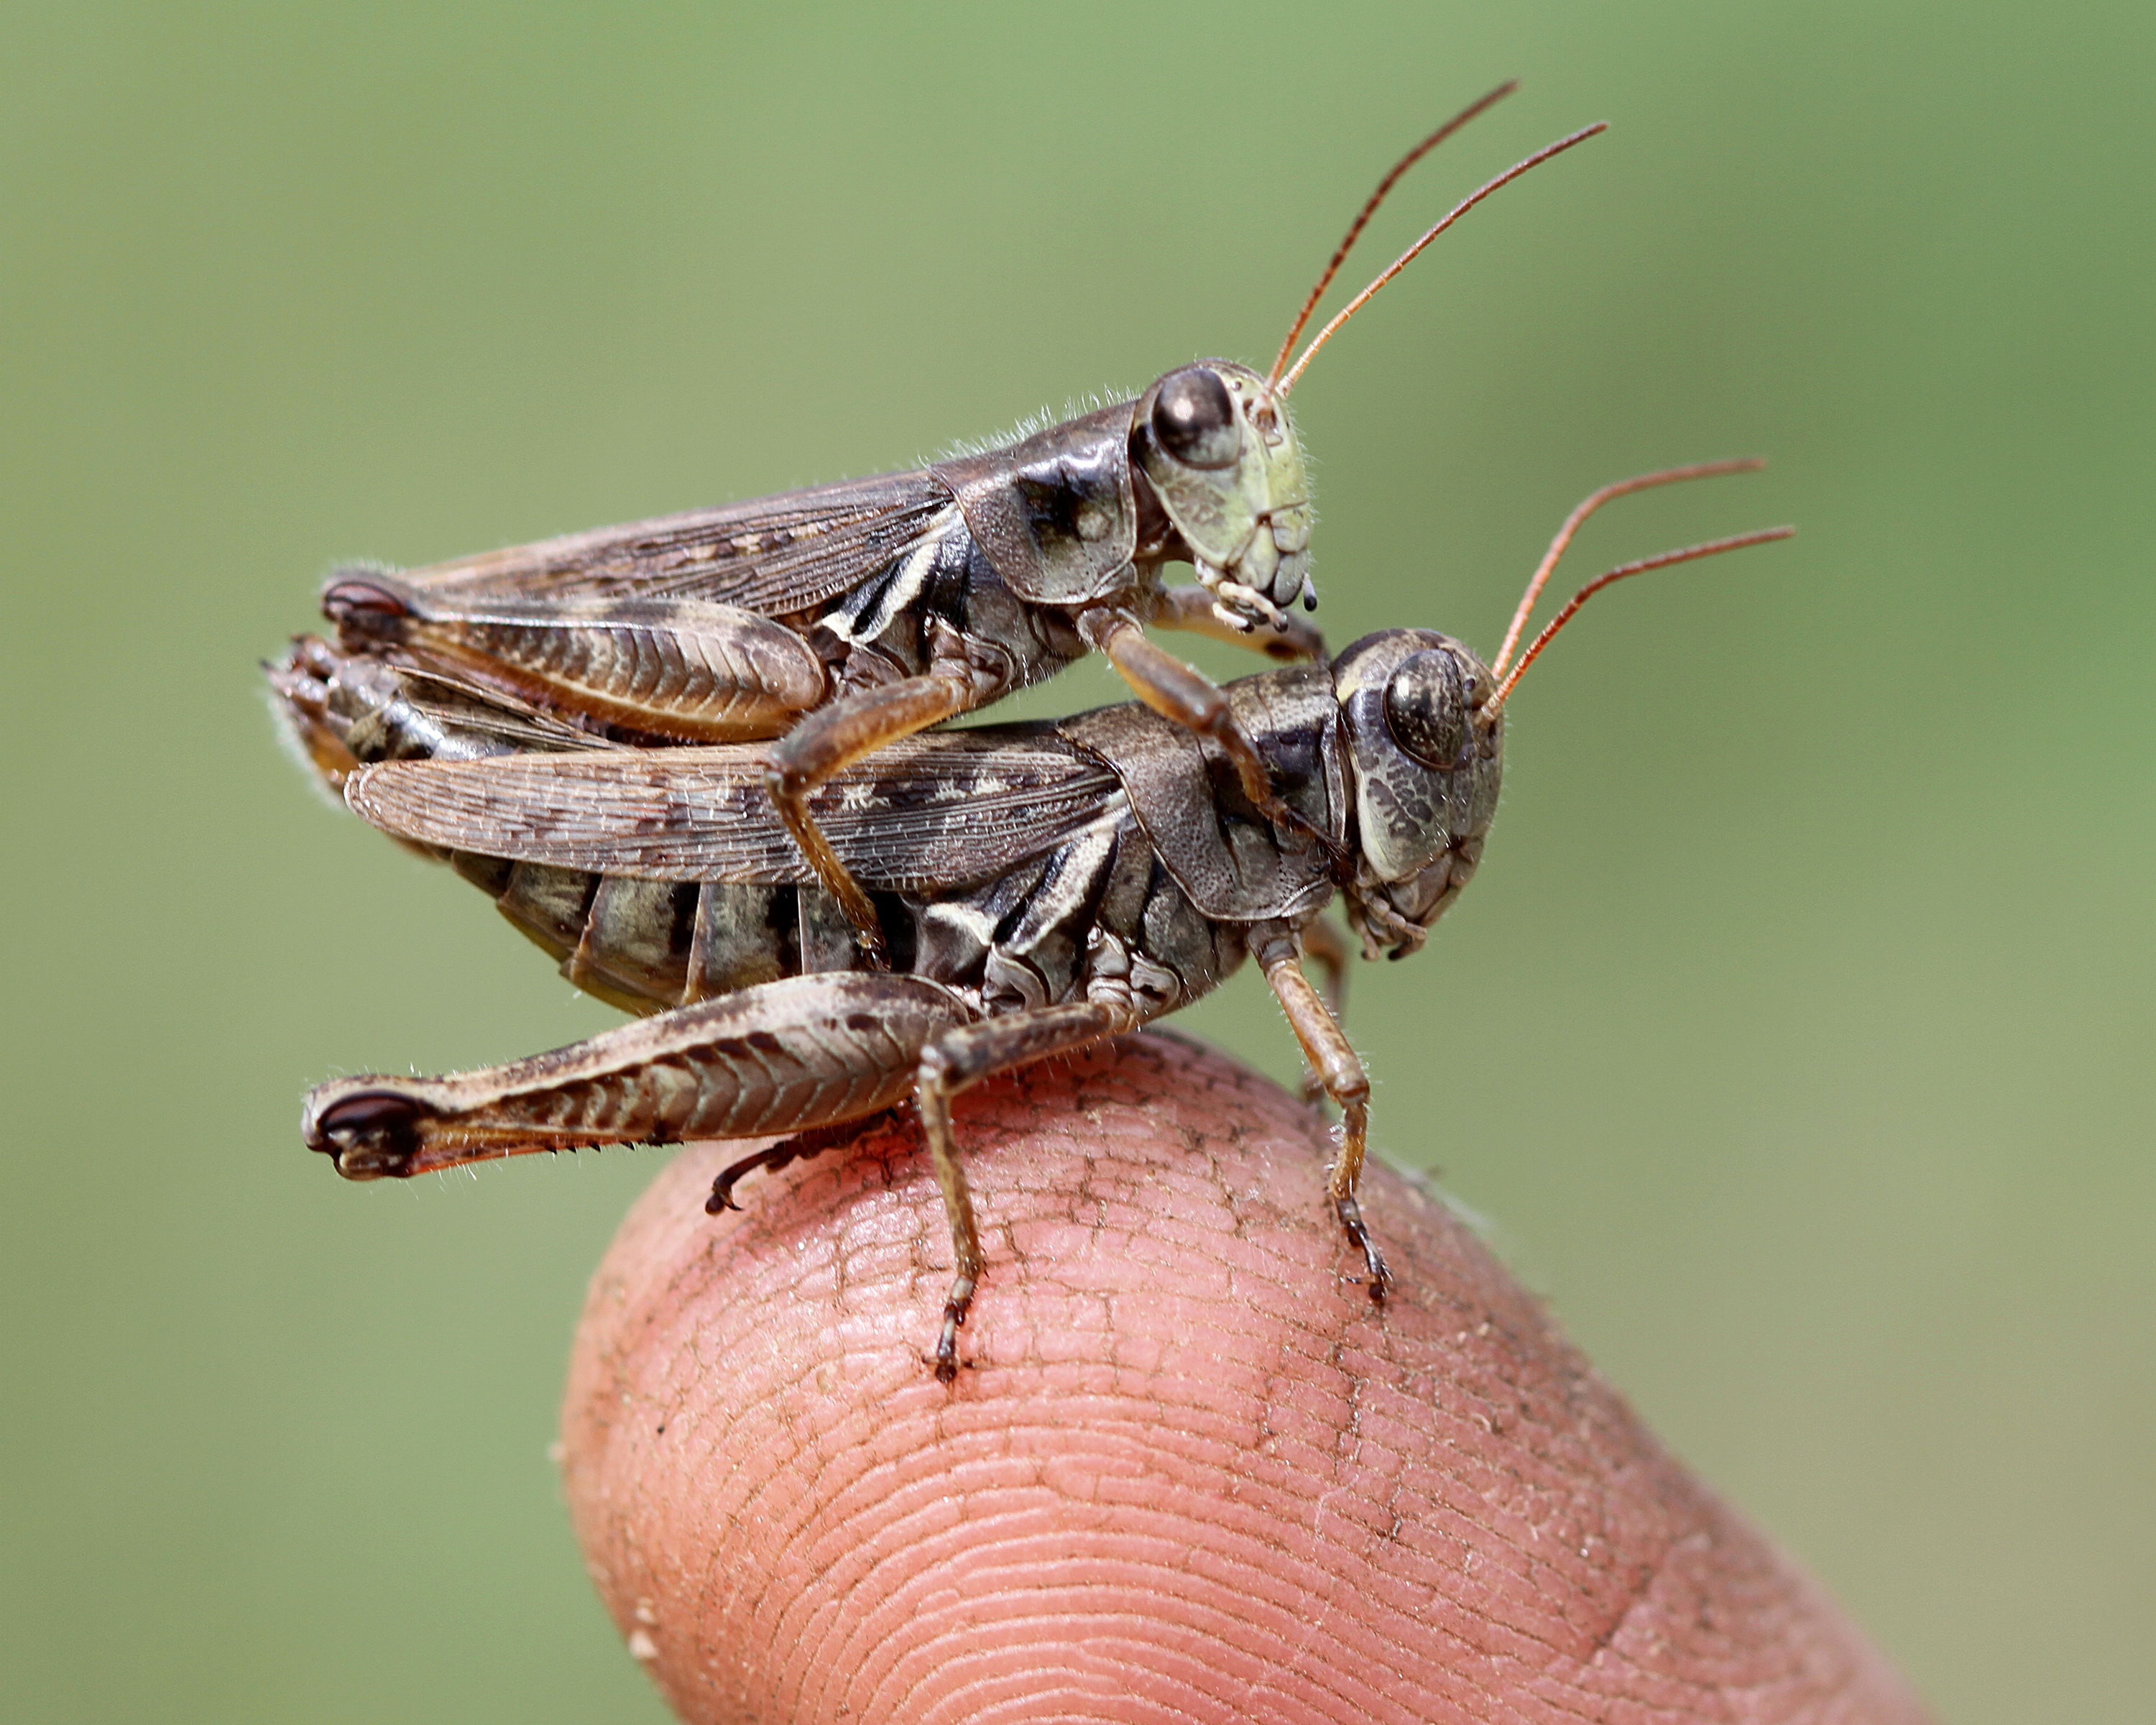 Grasshopper larvae - photo#19